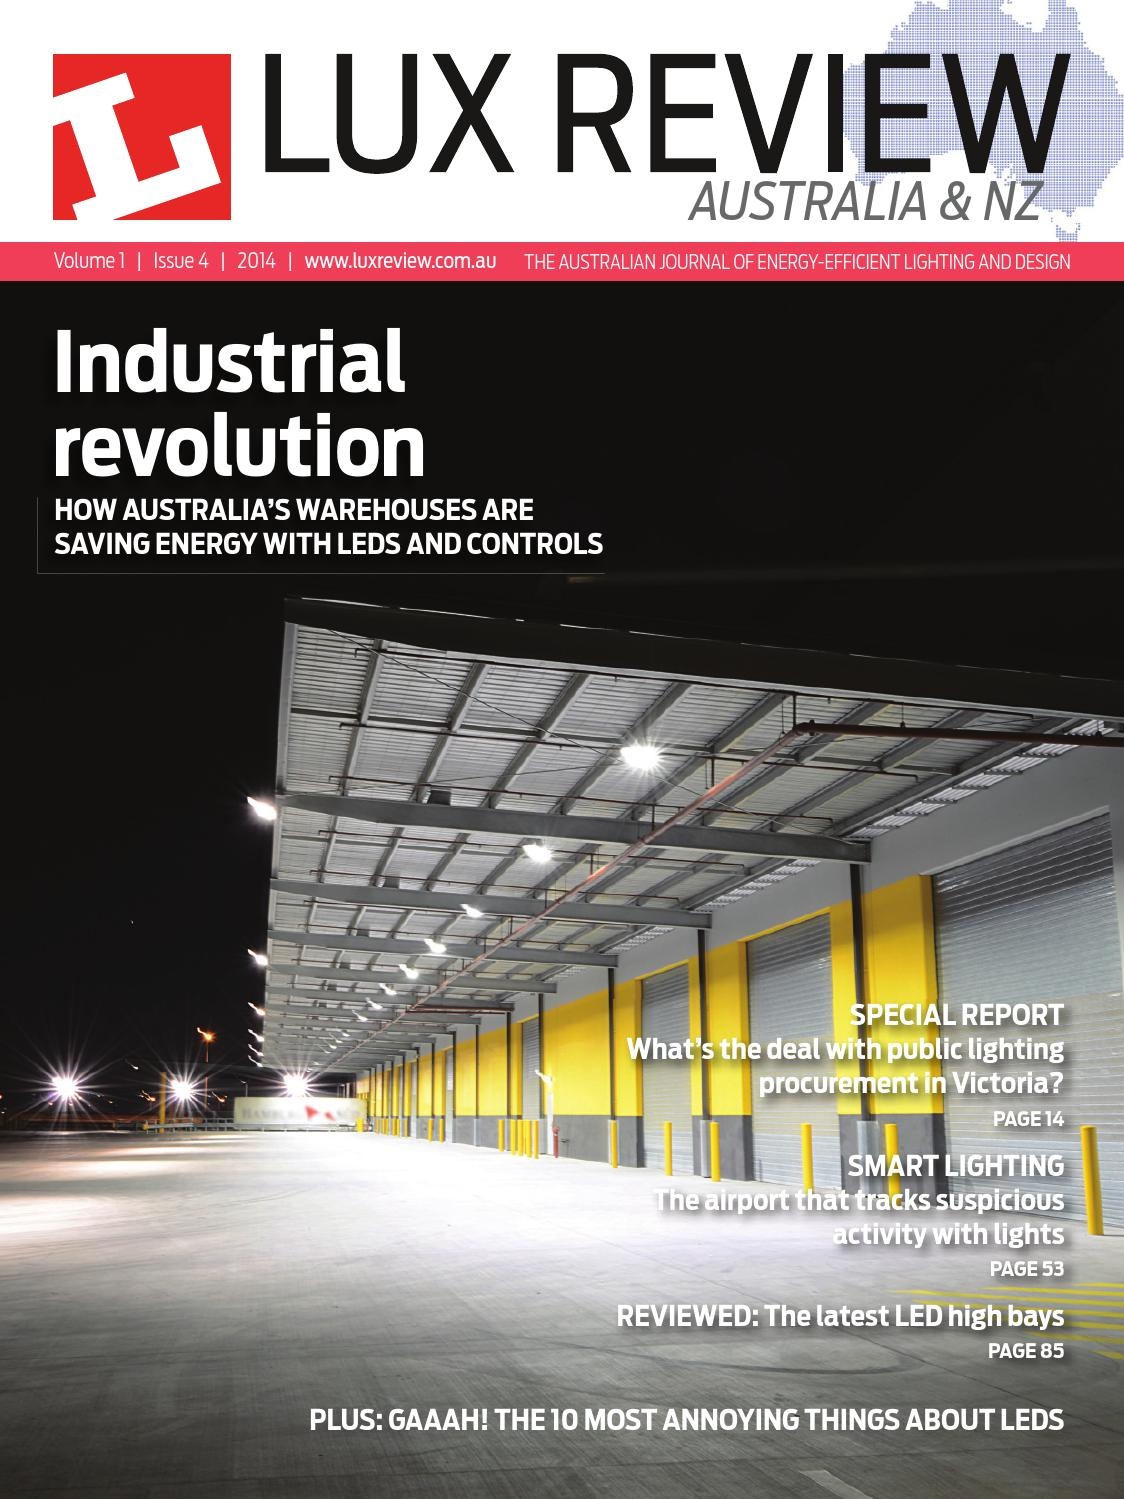 Lux Review Australia Nz Issue 4 By Revo Media Issuu Use A Relay Or Smart Switch With The 45 Watt Higher Halogen Lights